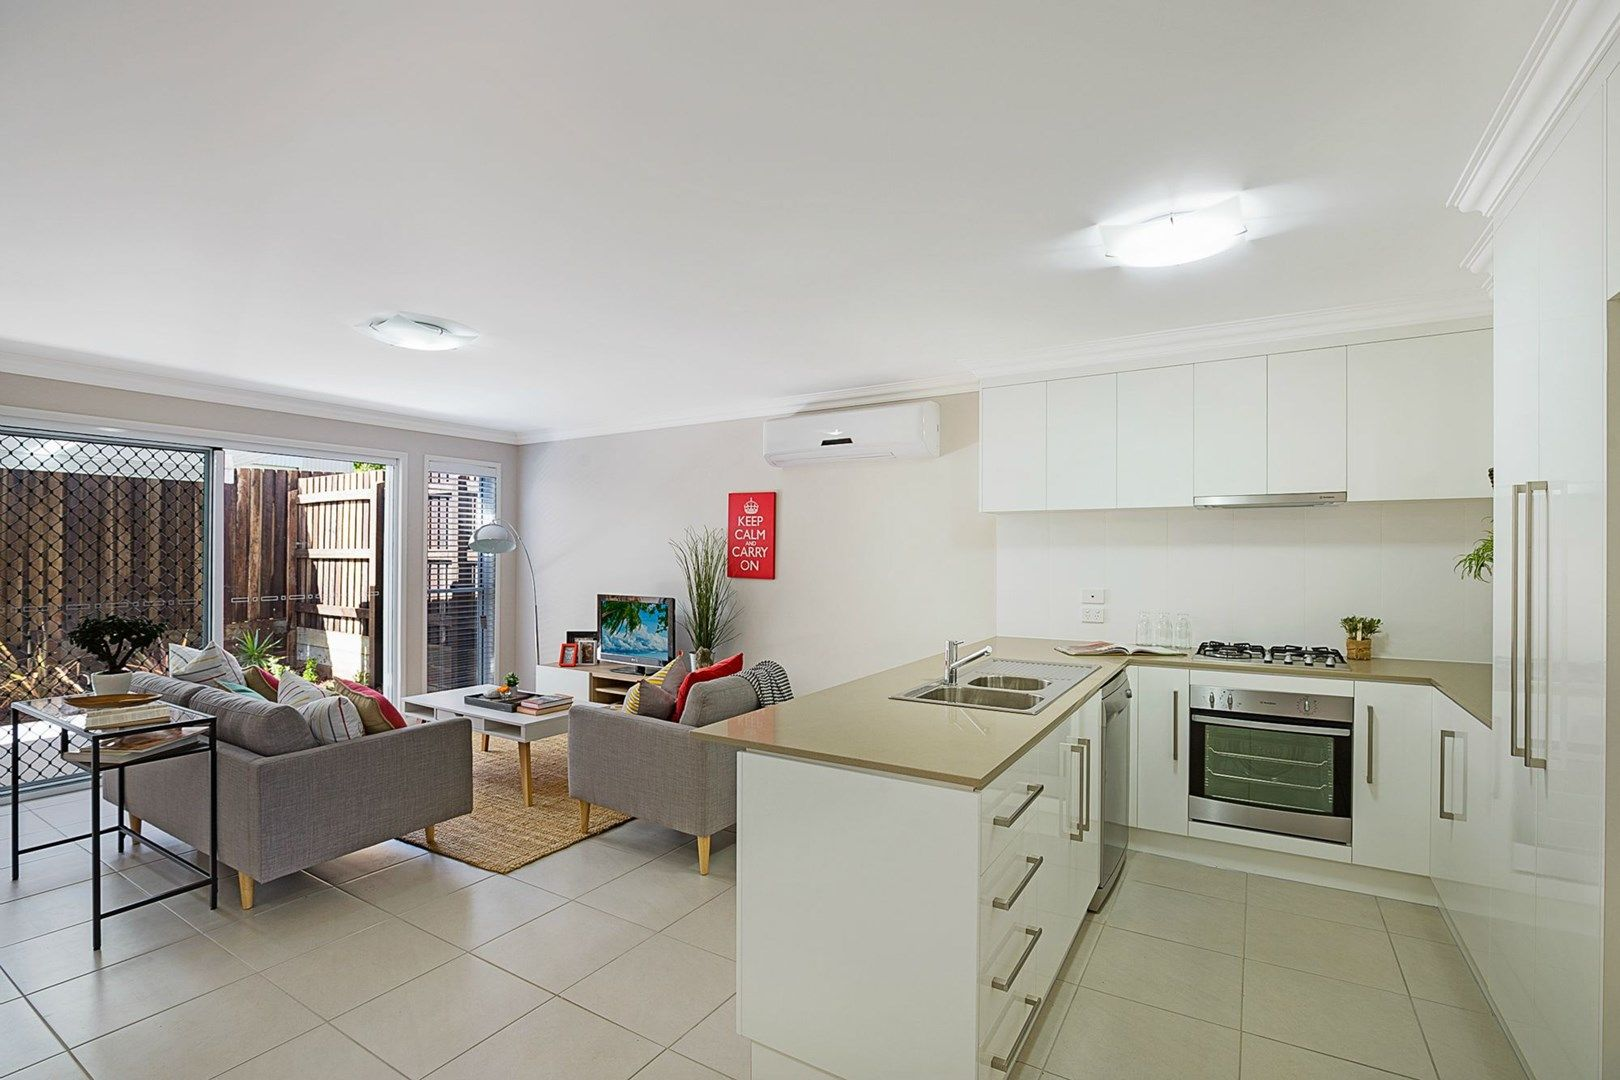 3/338 Hume Street, Centenary Heights QLD 4350, Image 0